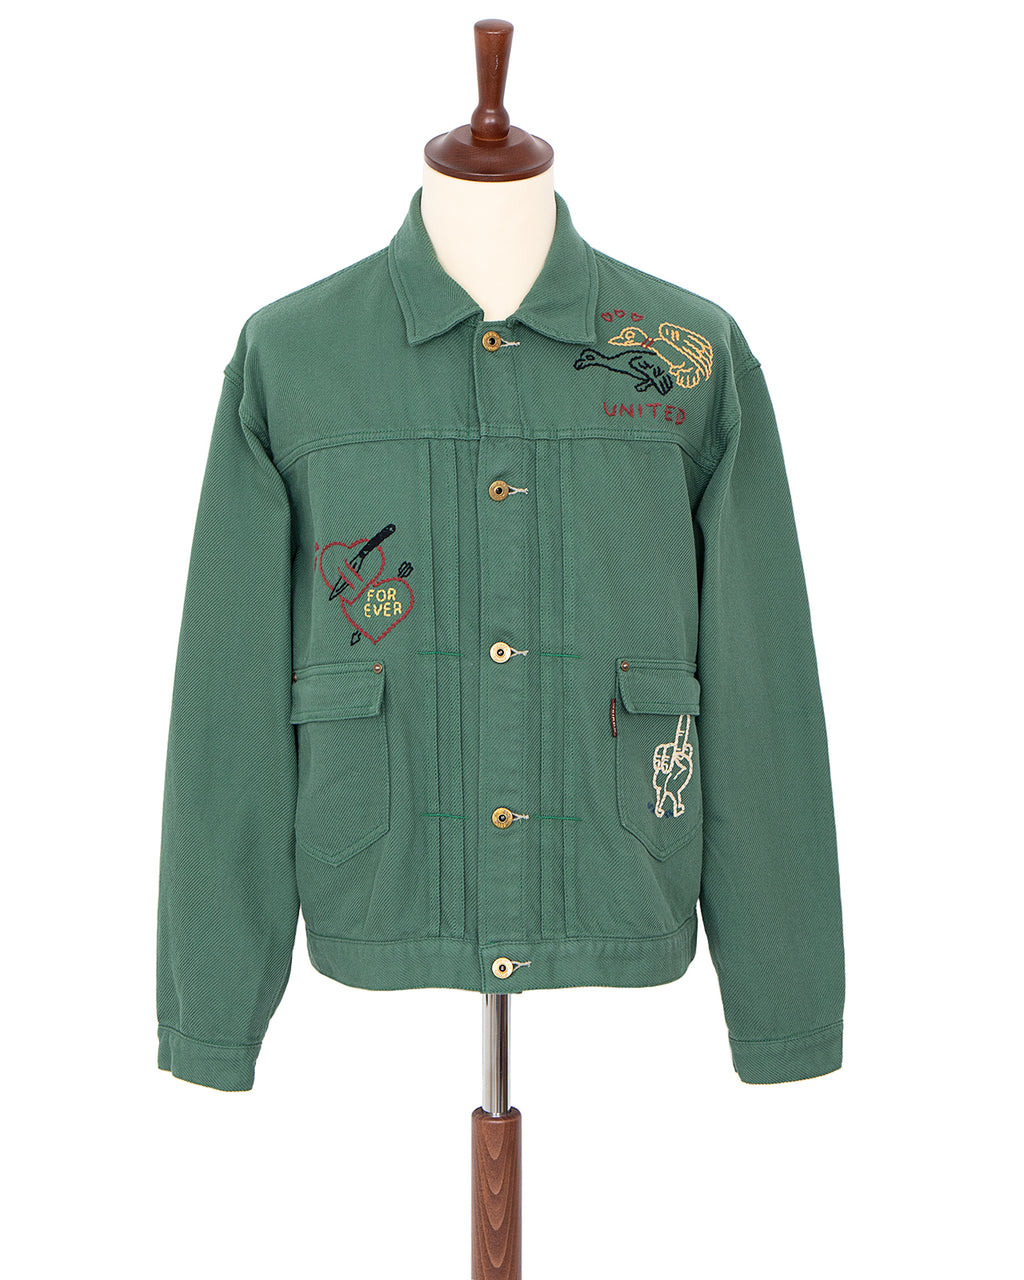 Weirdo Peace Love Jacket, Green